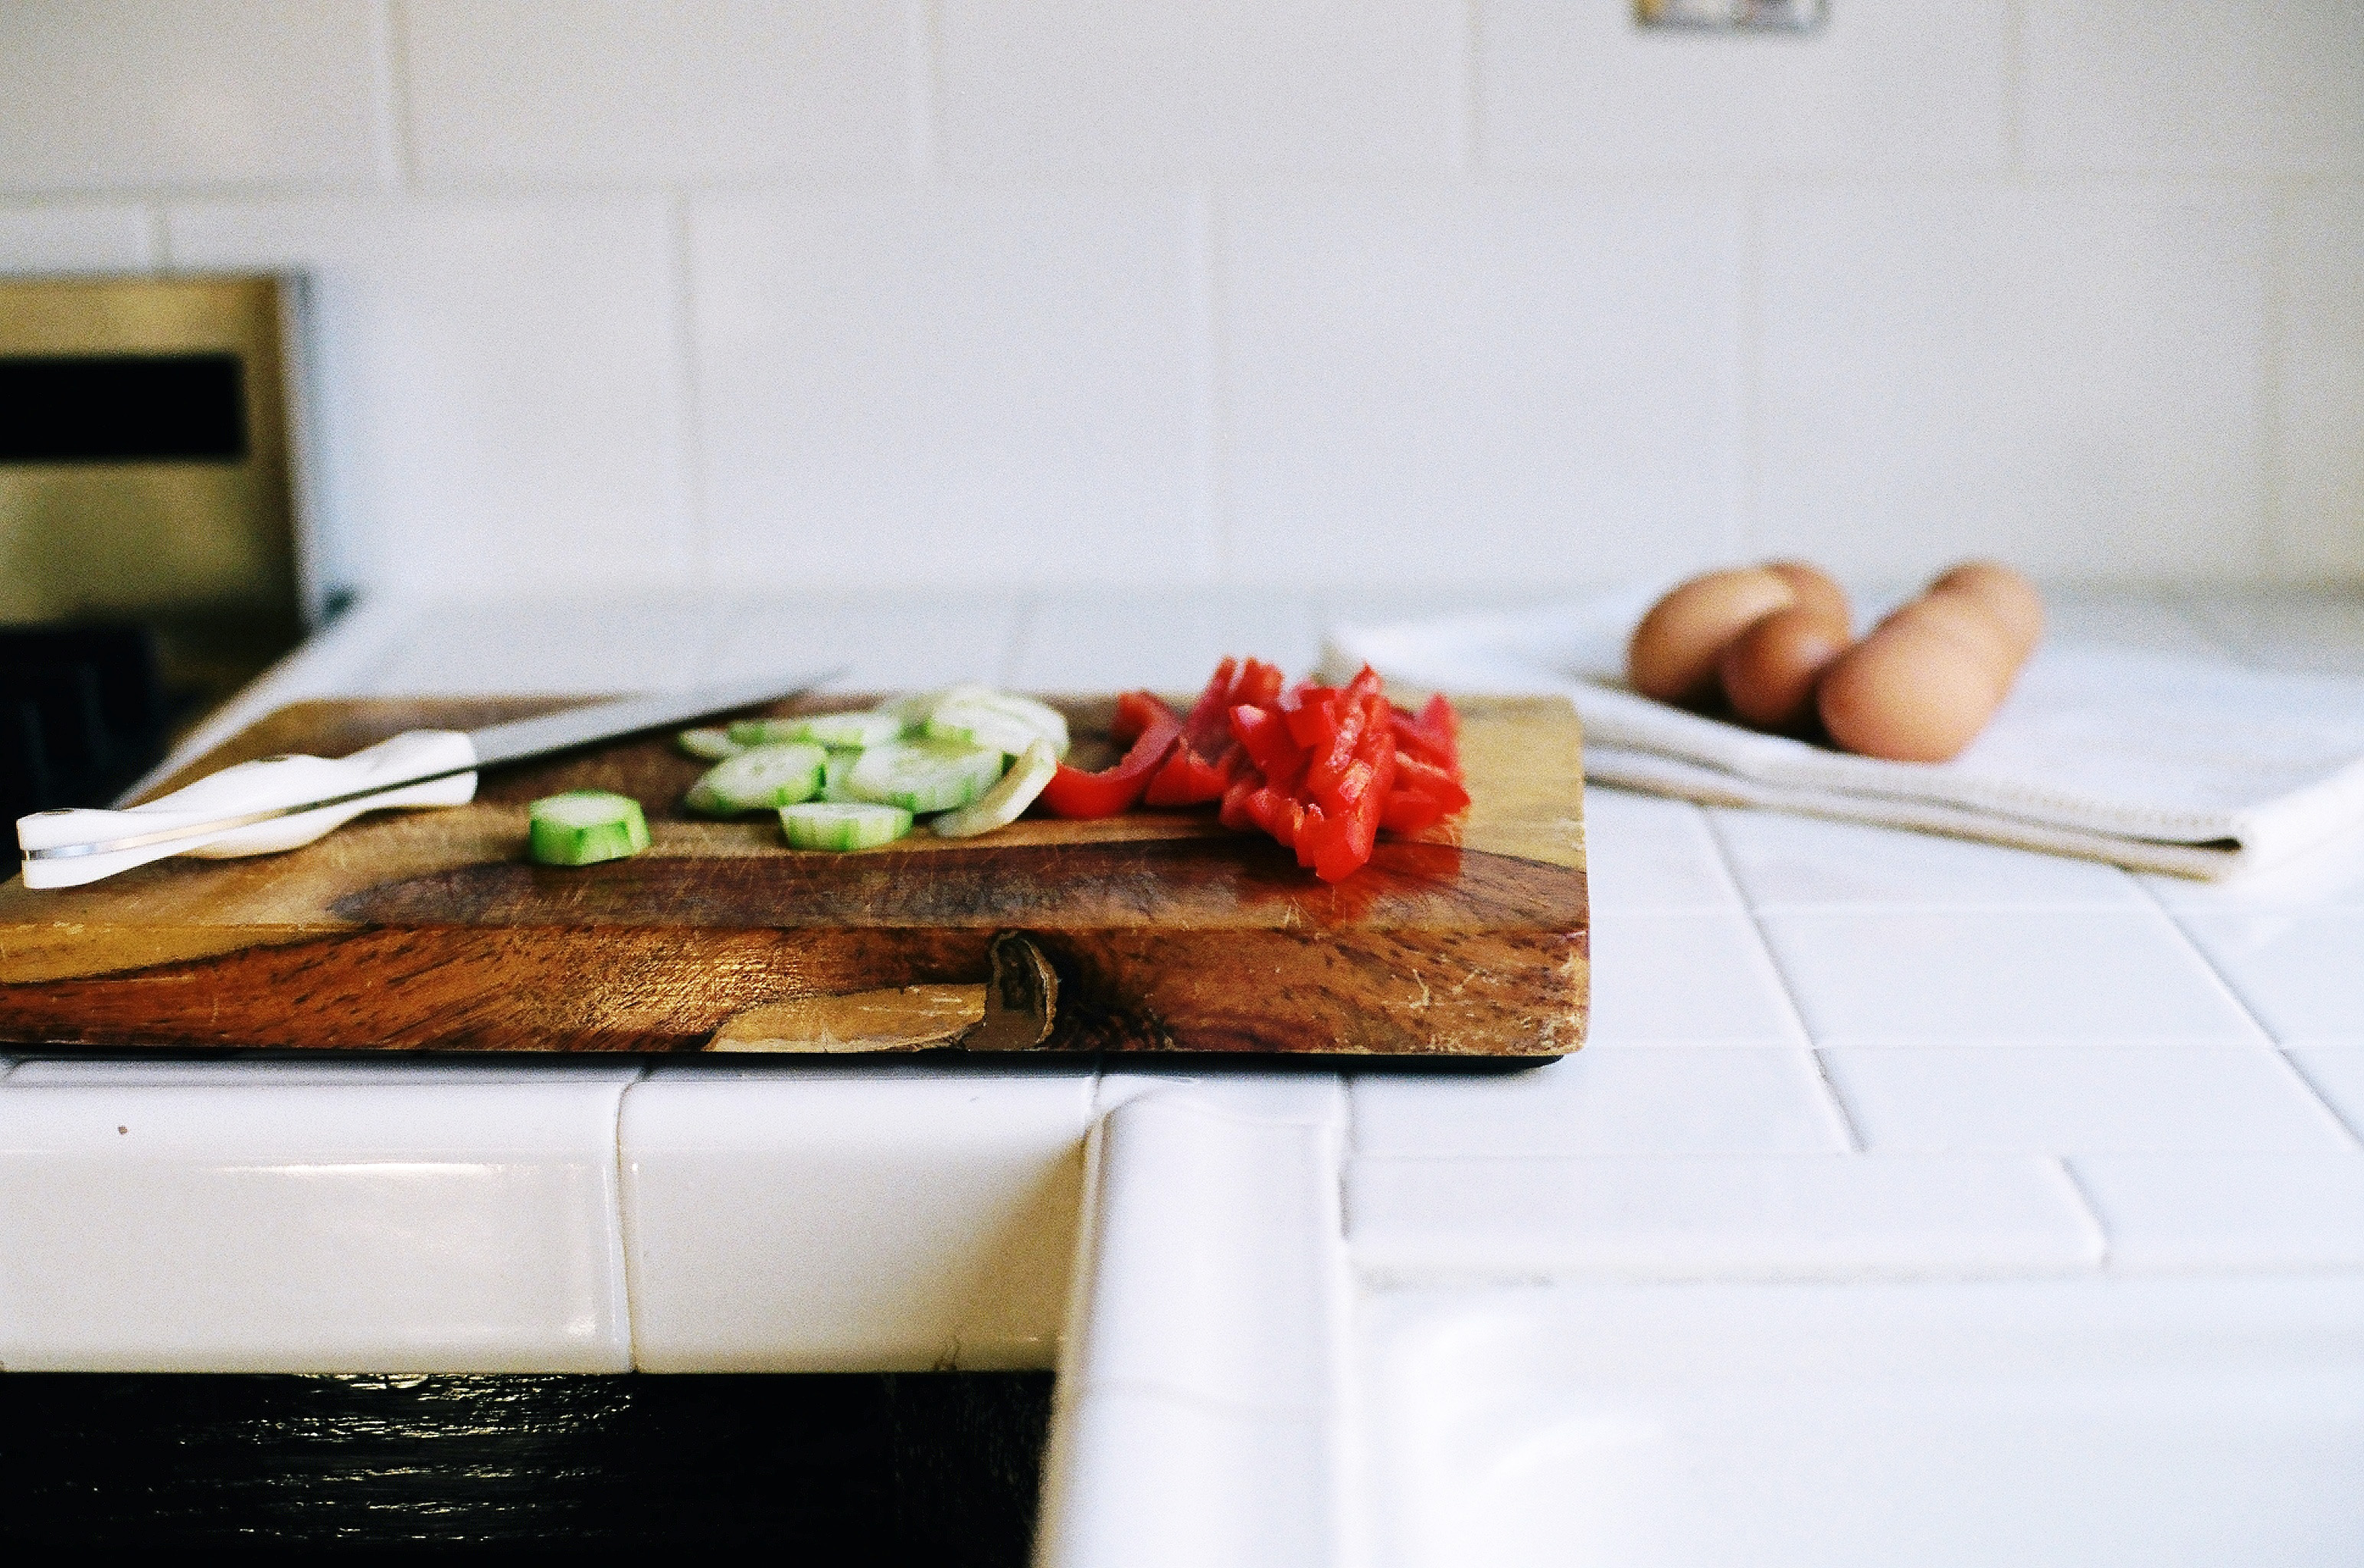 white ceramic countertop with cutting board and vegetables